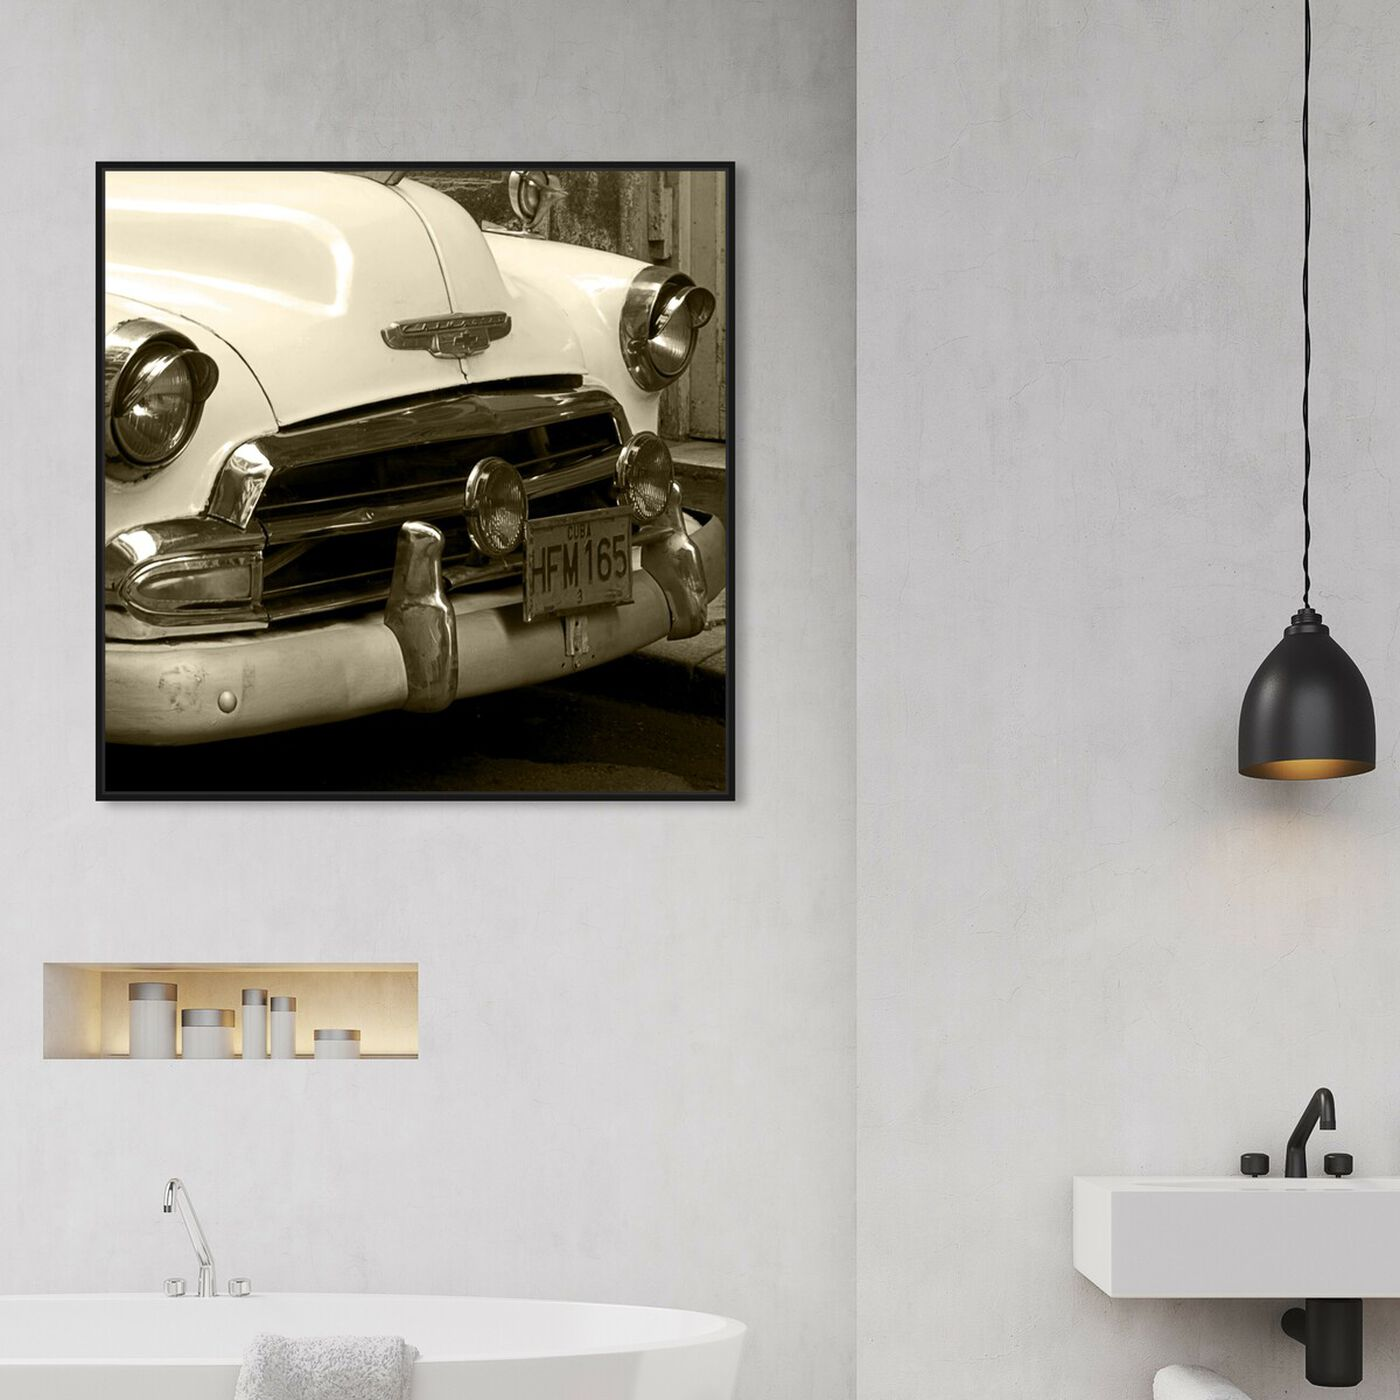 Hanging view of Vintage Macchina II featuring transportation and automobiles art.